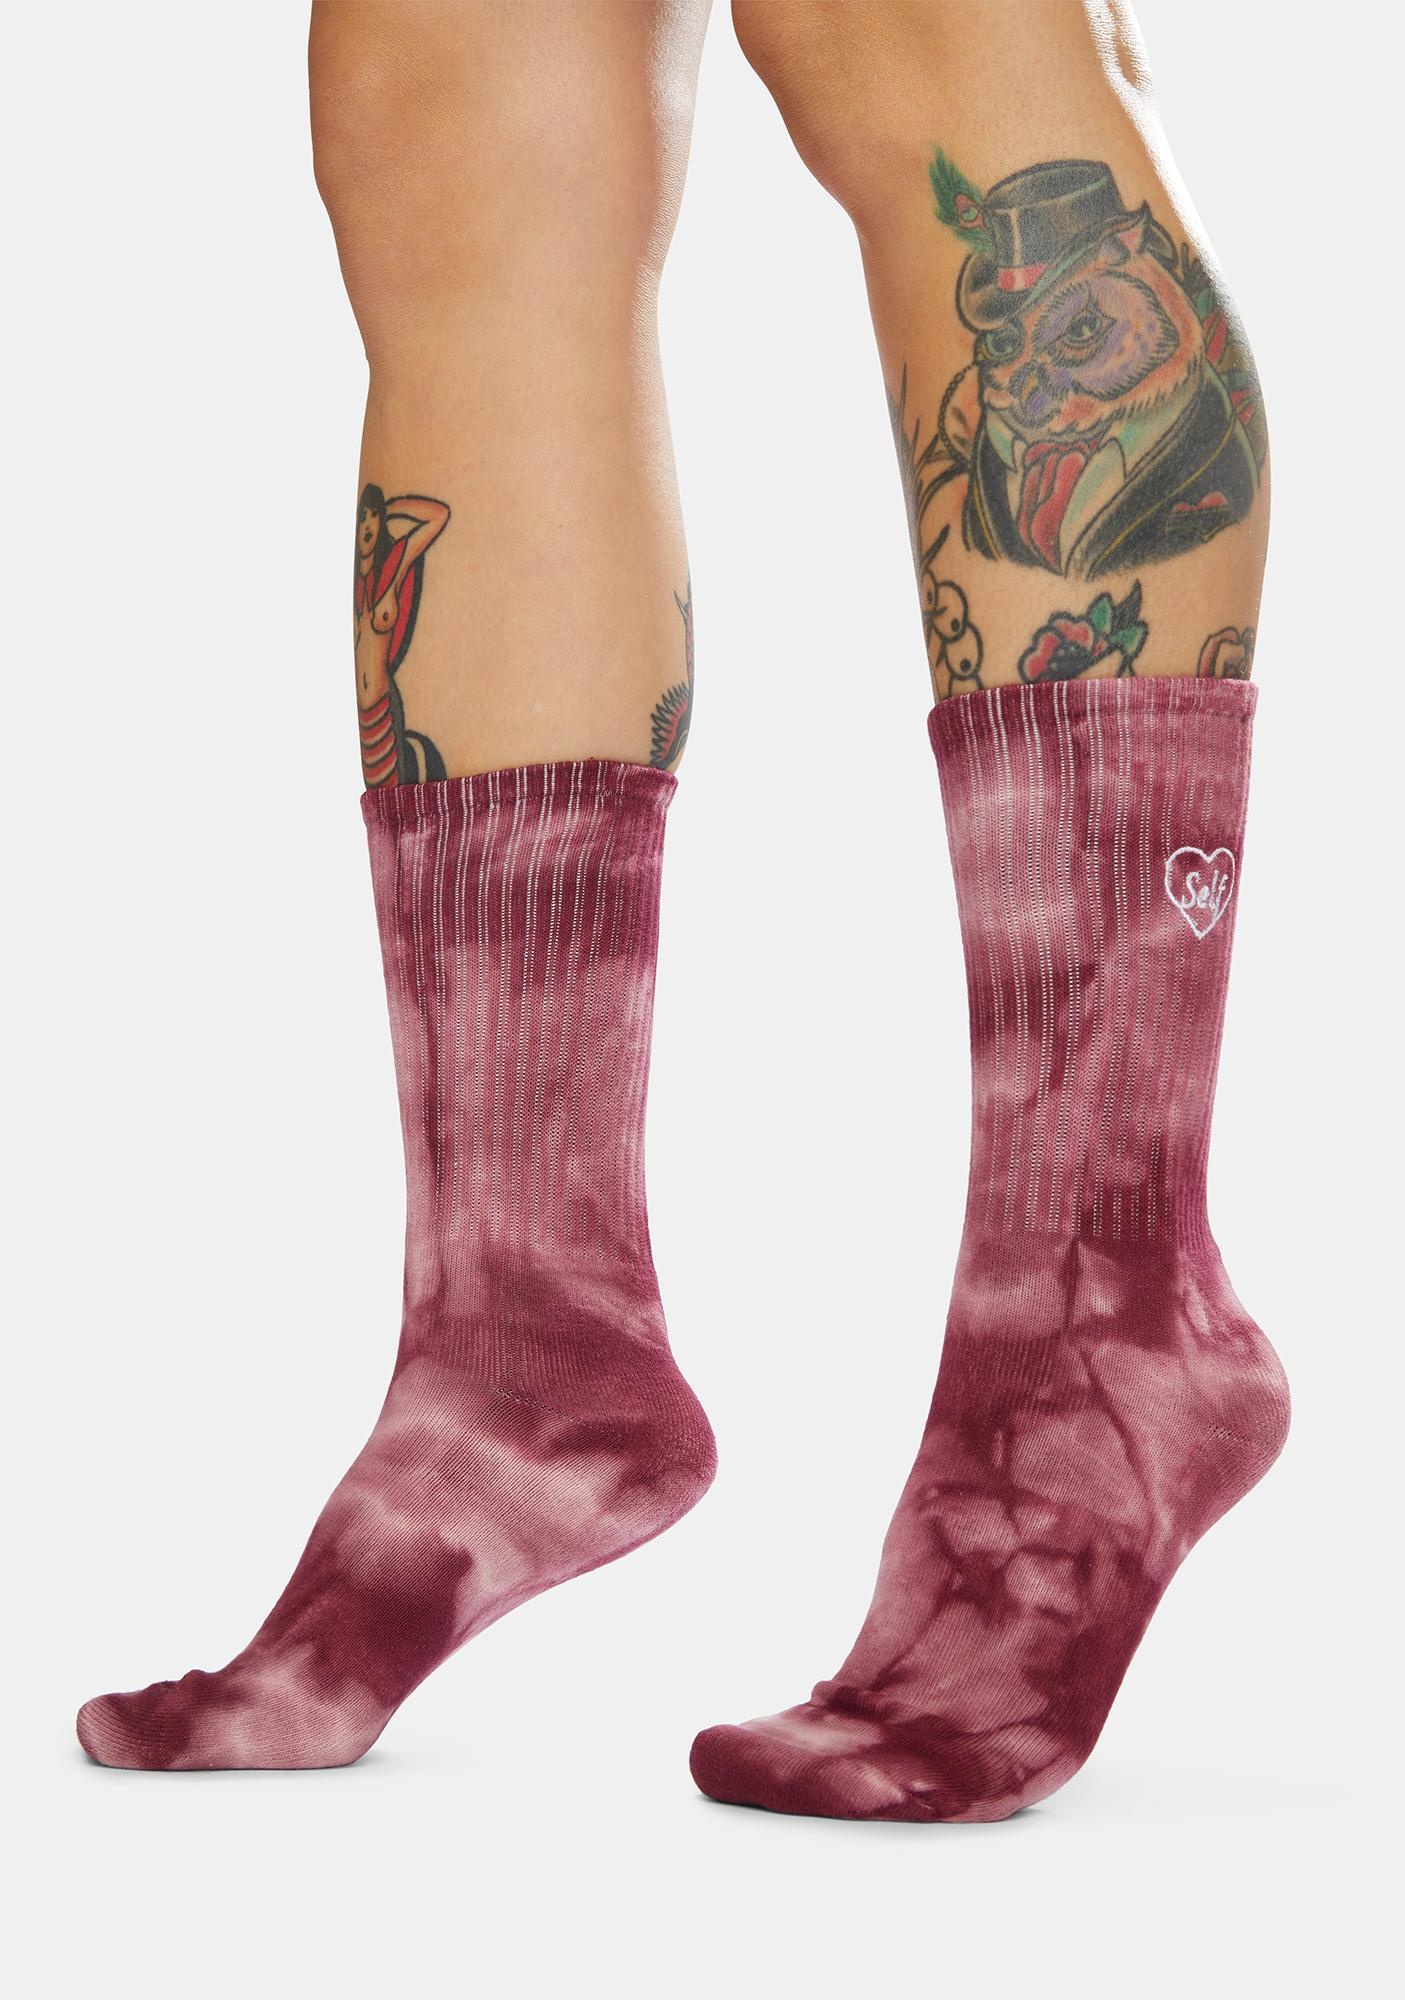 Petals and Peacocks Pink Heart Tie Dye Embroidered Crew Socks